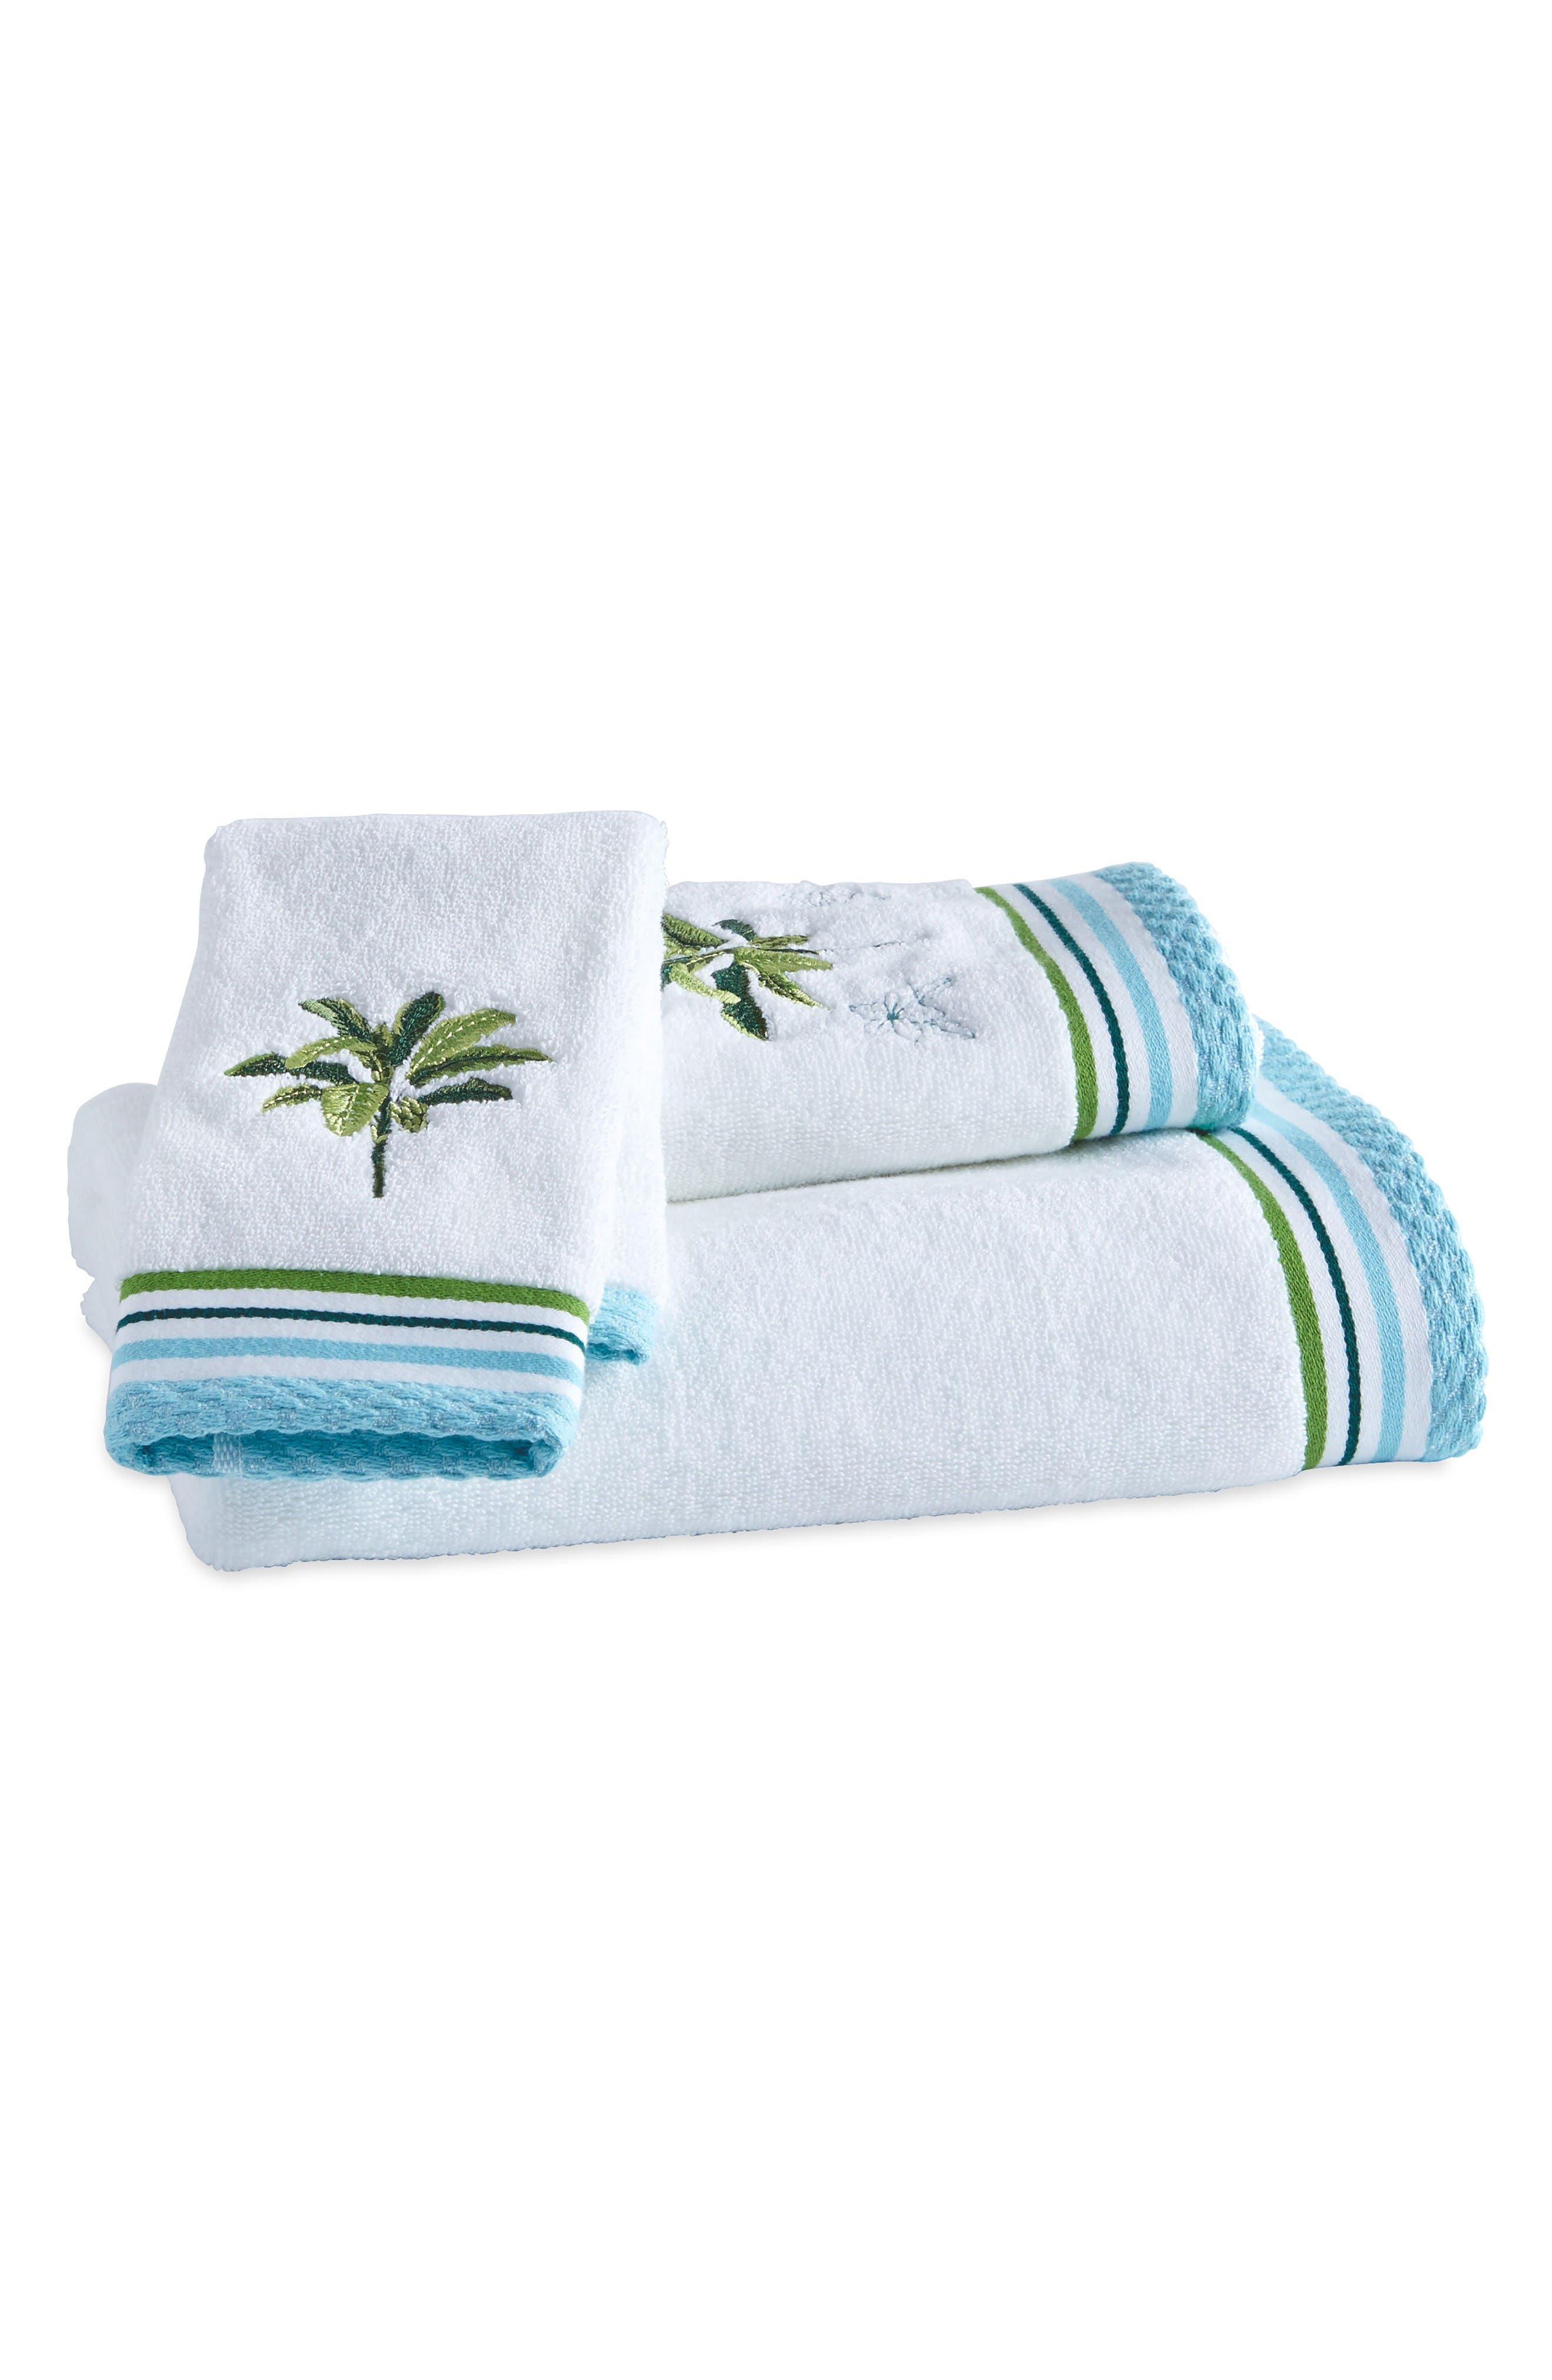 Destinations Tropical Palm Bath Towel, Hand Towel and Washcloth Set